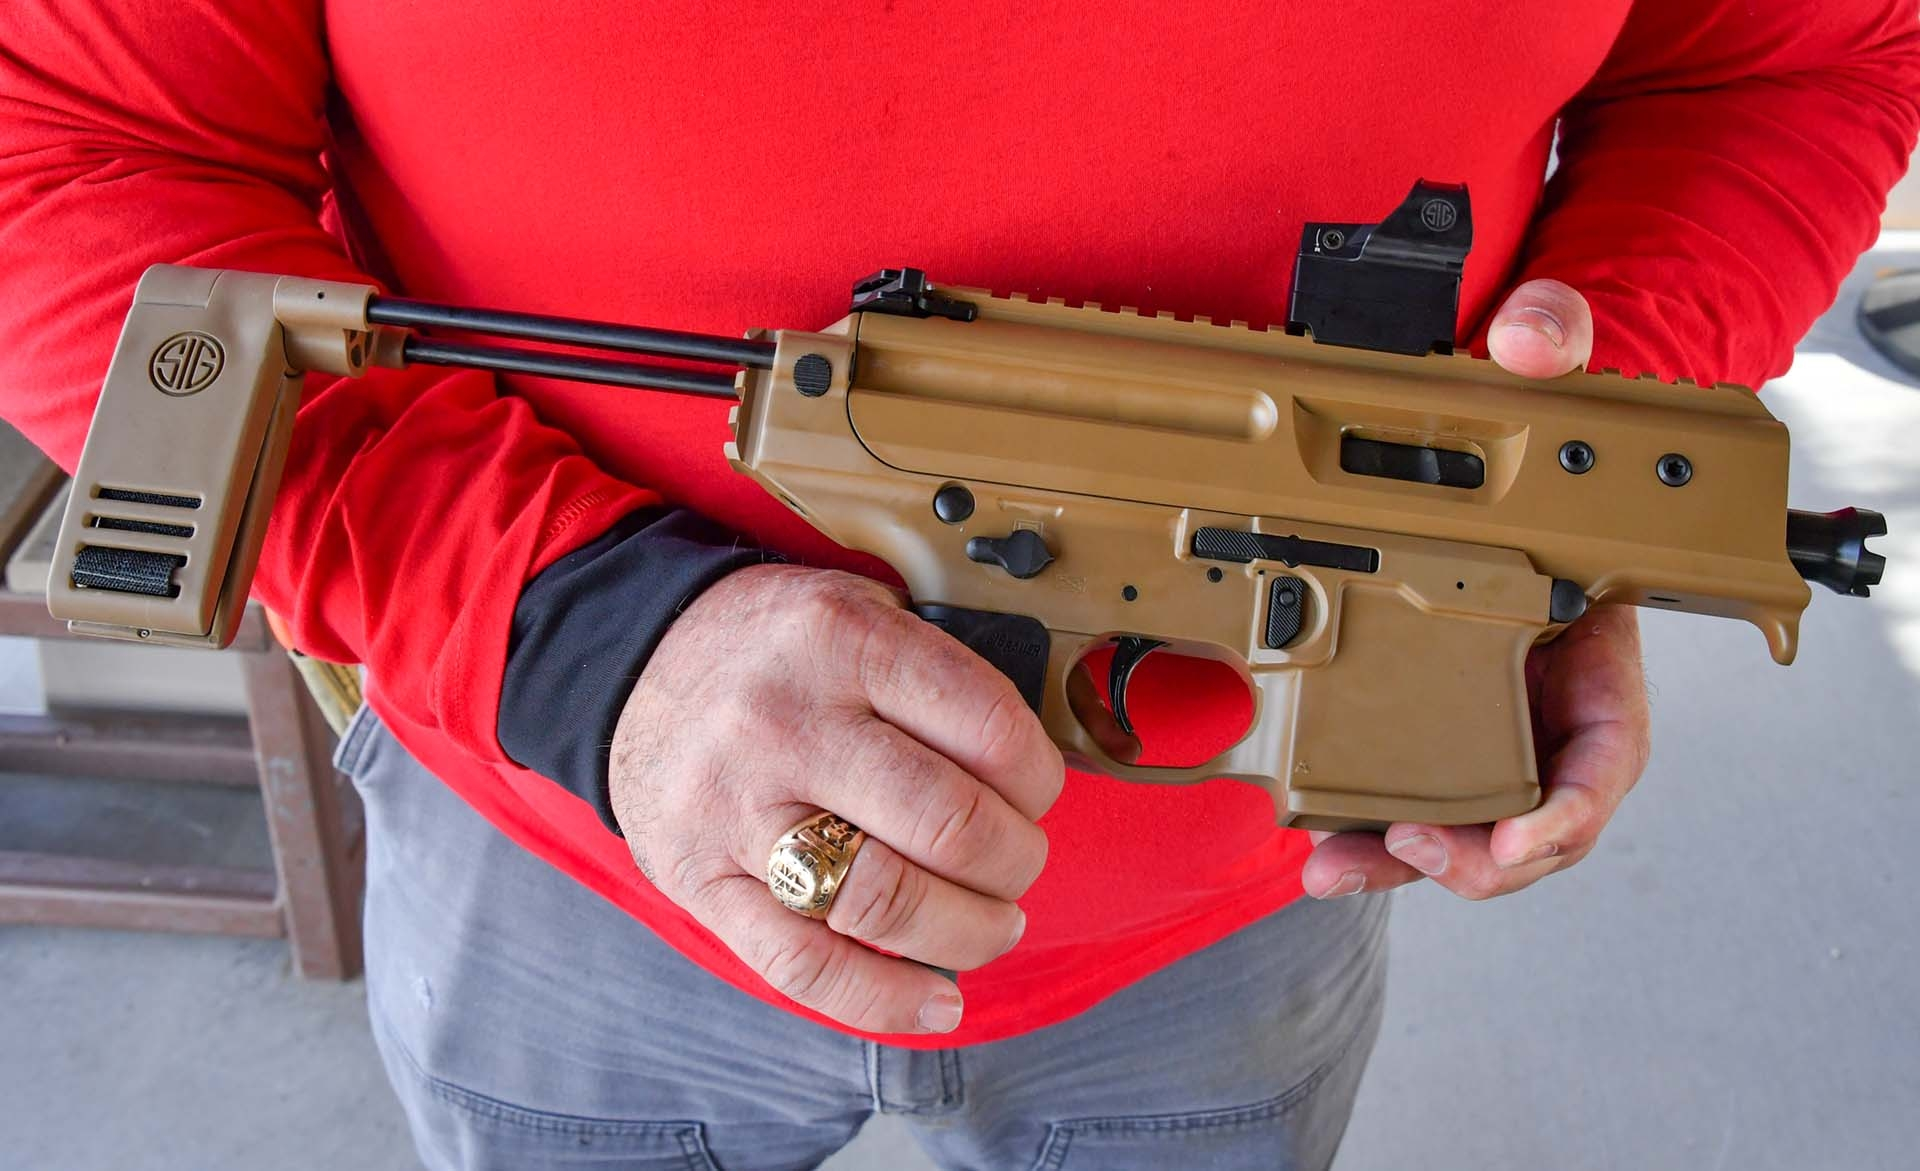 The SIG Sauer MPX Copperhead 9mm pistol